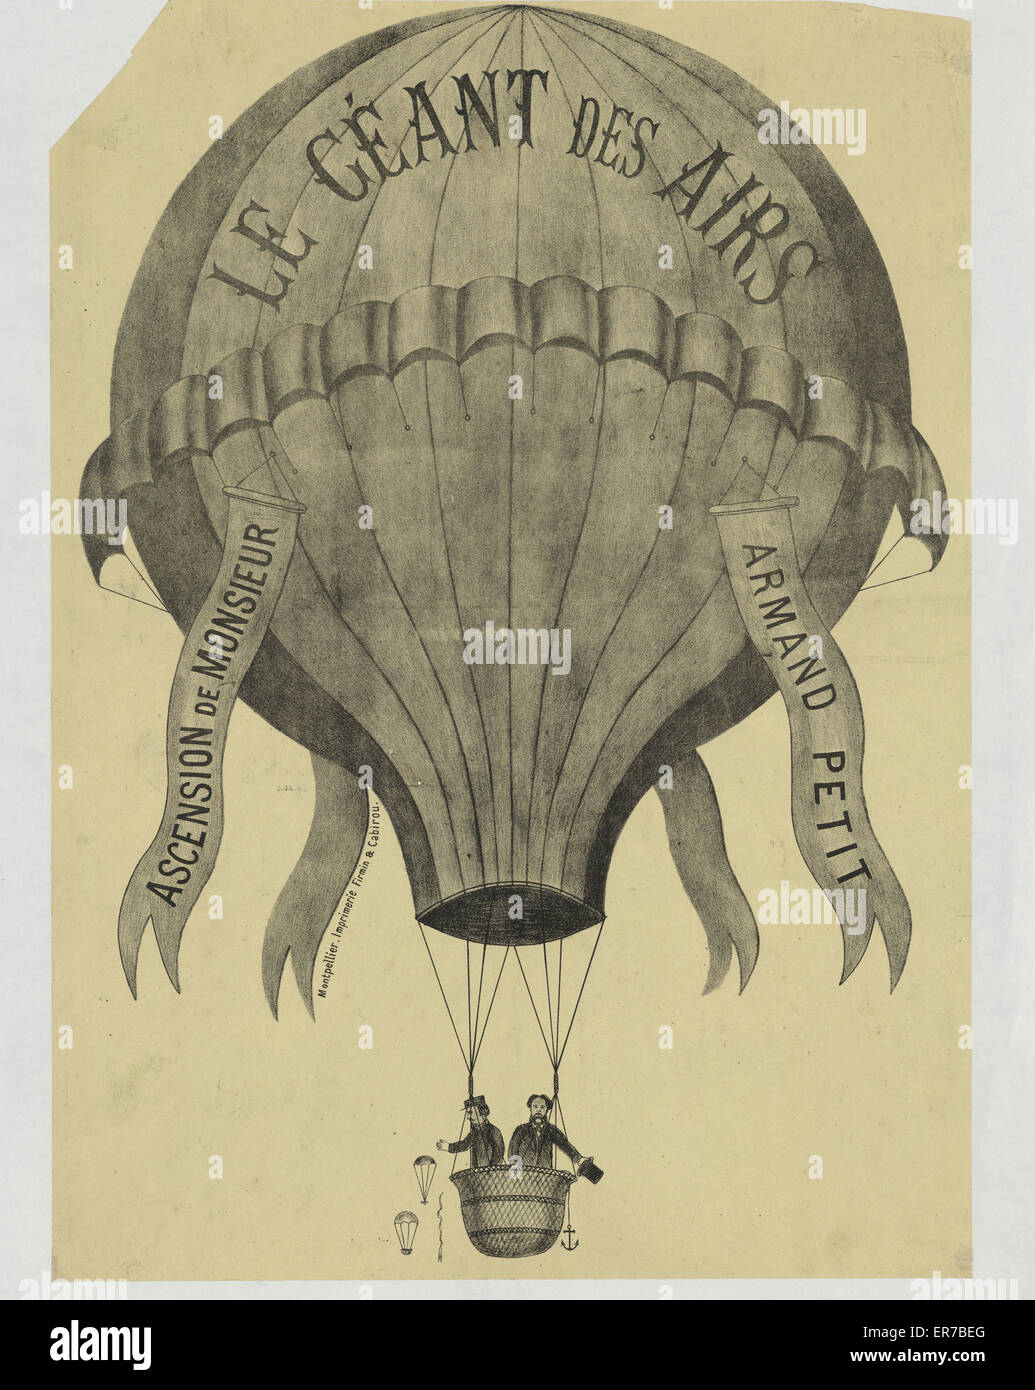 Le Geant des airs. Ascension de Monsieur Armand Petit. Print shows two men ascending in balloon labeled Le Geant - Stock Image